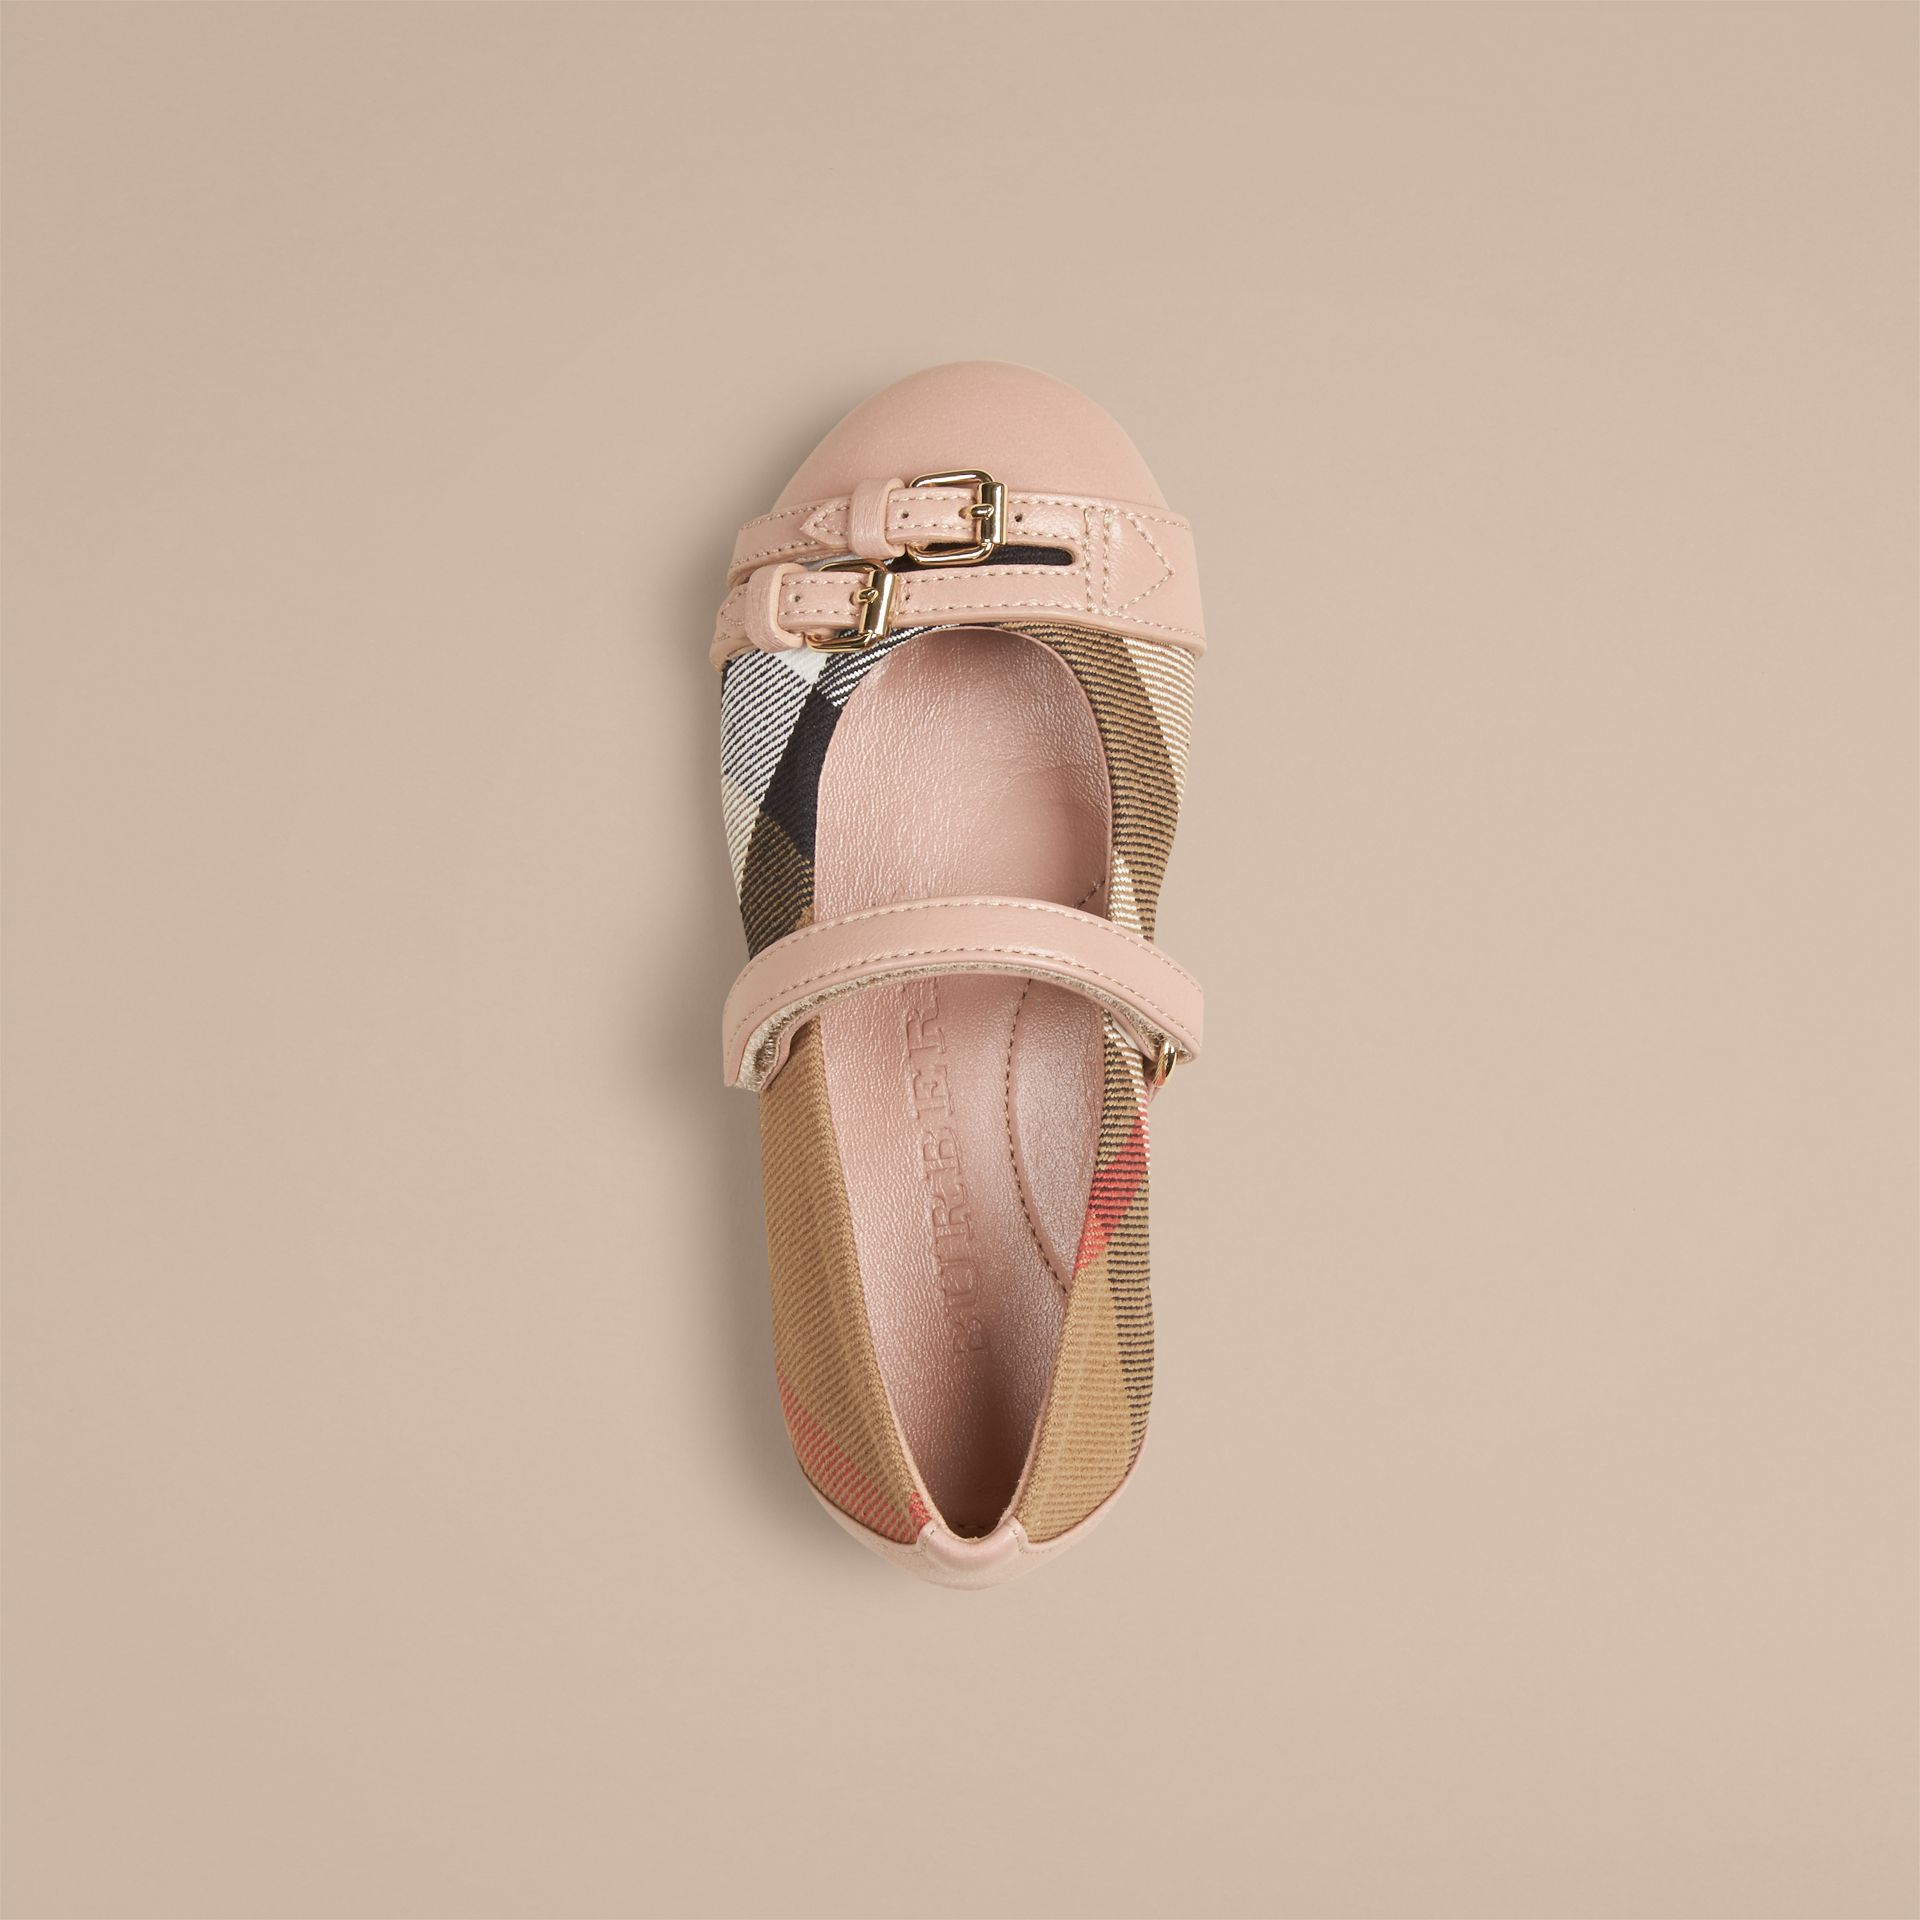 Nude blush Belt Detail House Check Ballerinas Nude Blush - gallery image 3